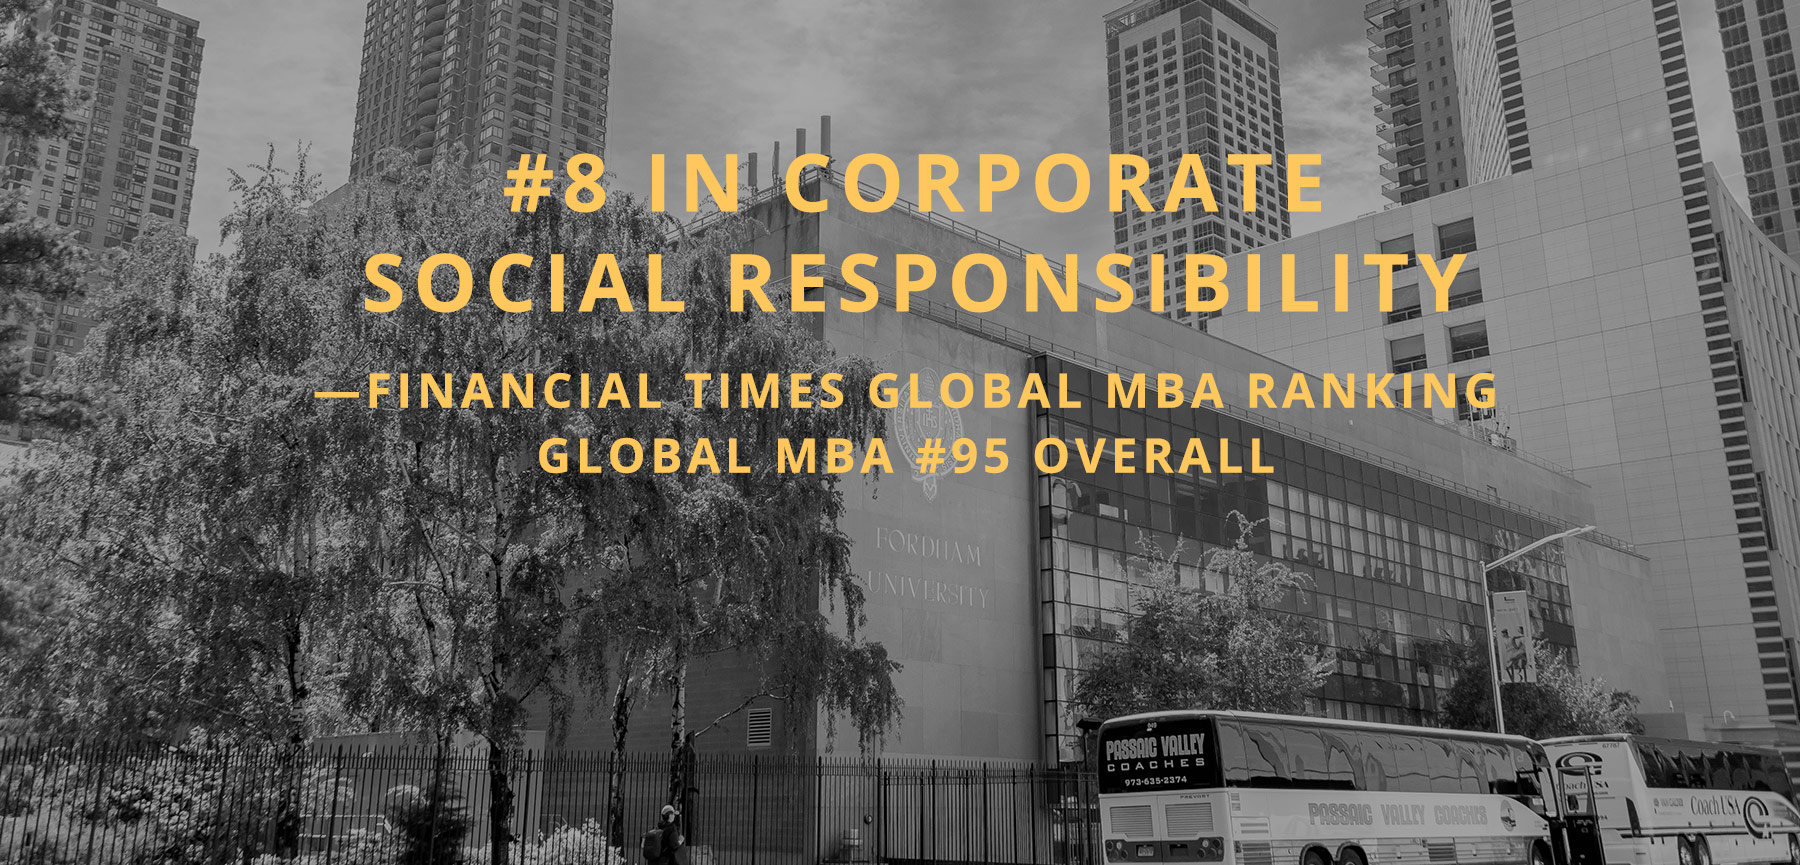 #8 in corporate social responsibility